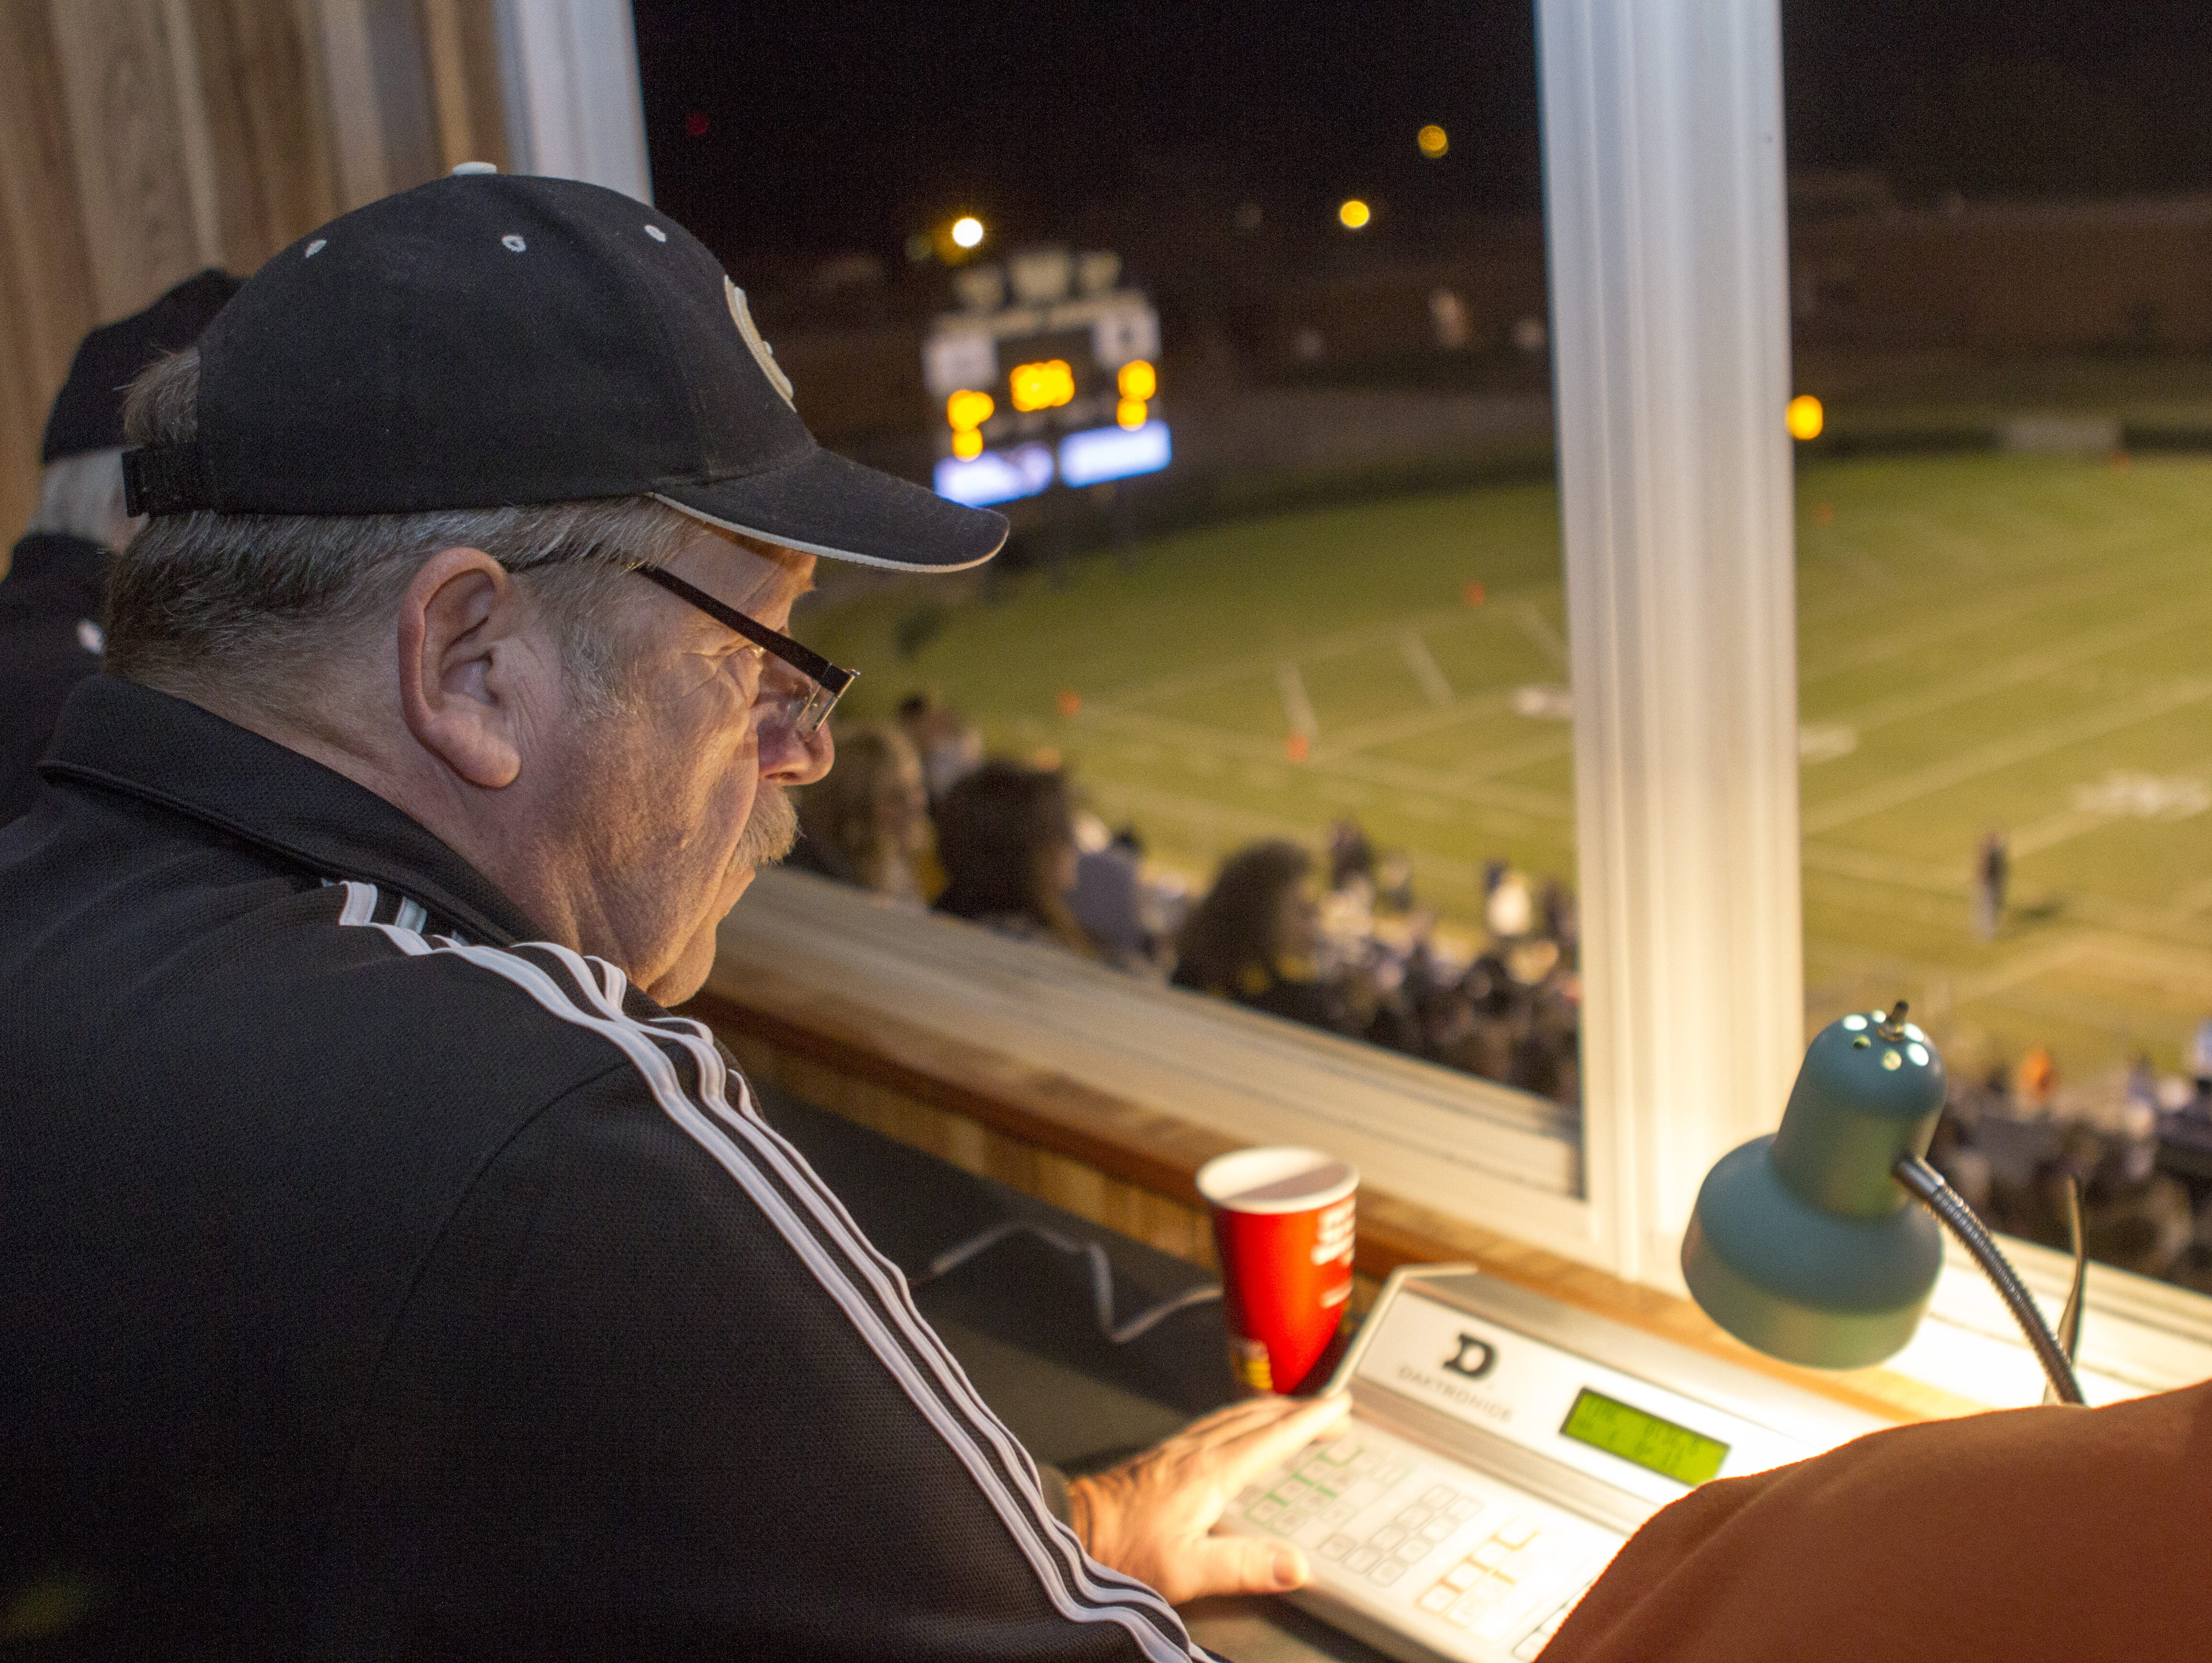 Phil Crain watches to see if Greer High School gets the extra point, after adding the Yellowjackets' first score to the board. Crain runs the scoreboard at the school, and beside him to the left Gary Vaughn, who operates the 25-second clock. On his right is Jeff McCoy, an official with the South Carolina High School League overseeing the scoreboard dring the playoff game with Travelers Rest.